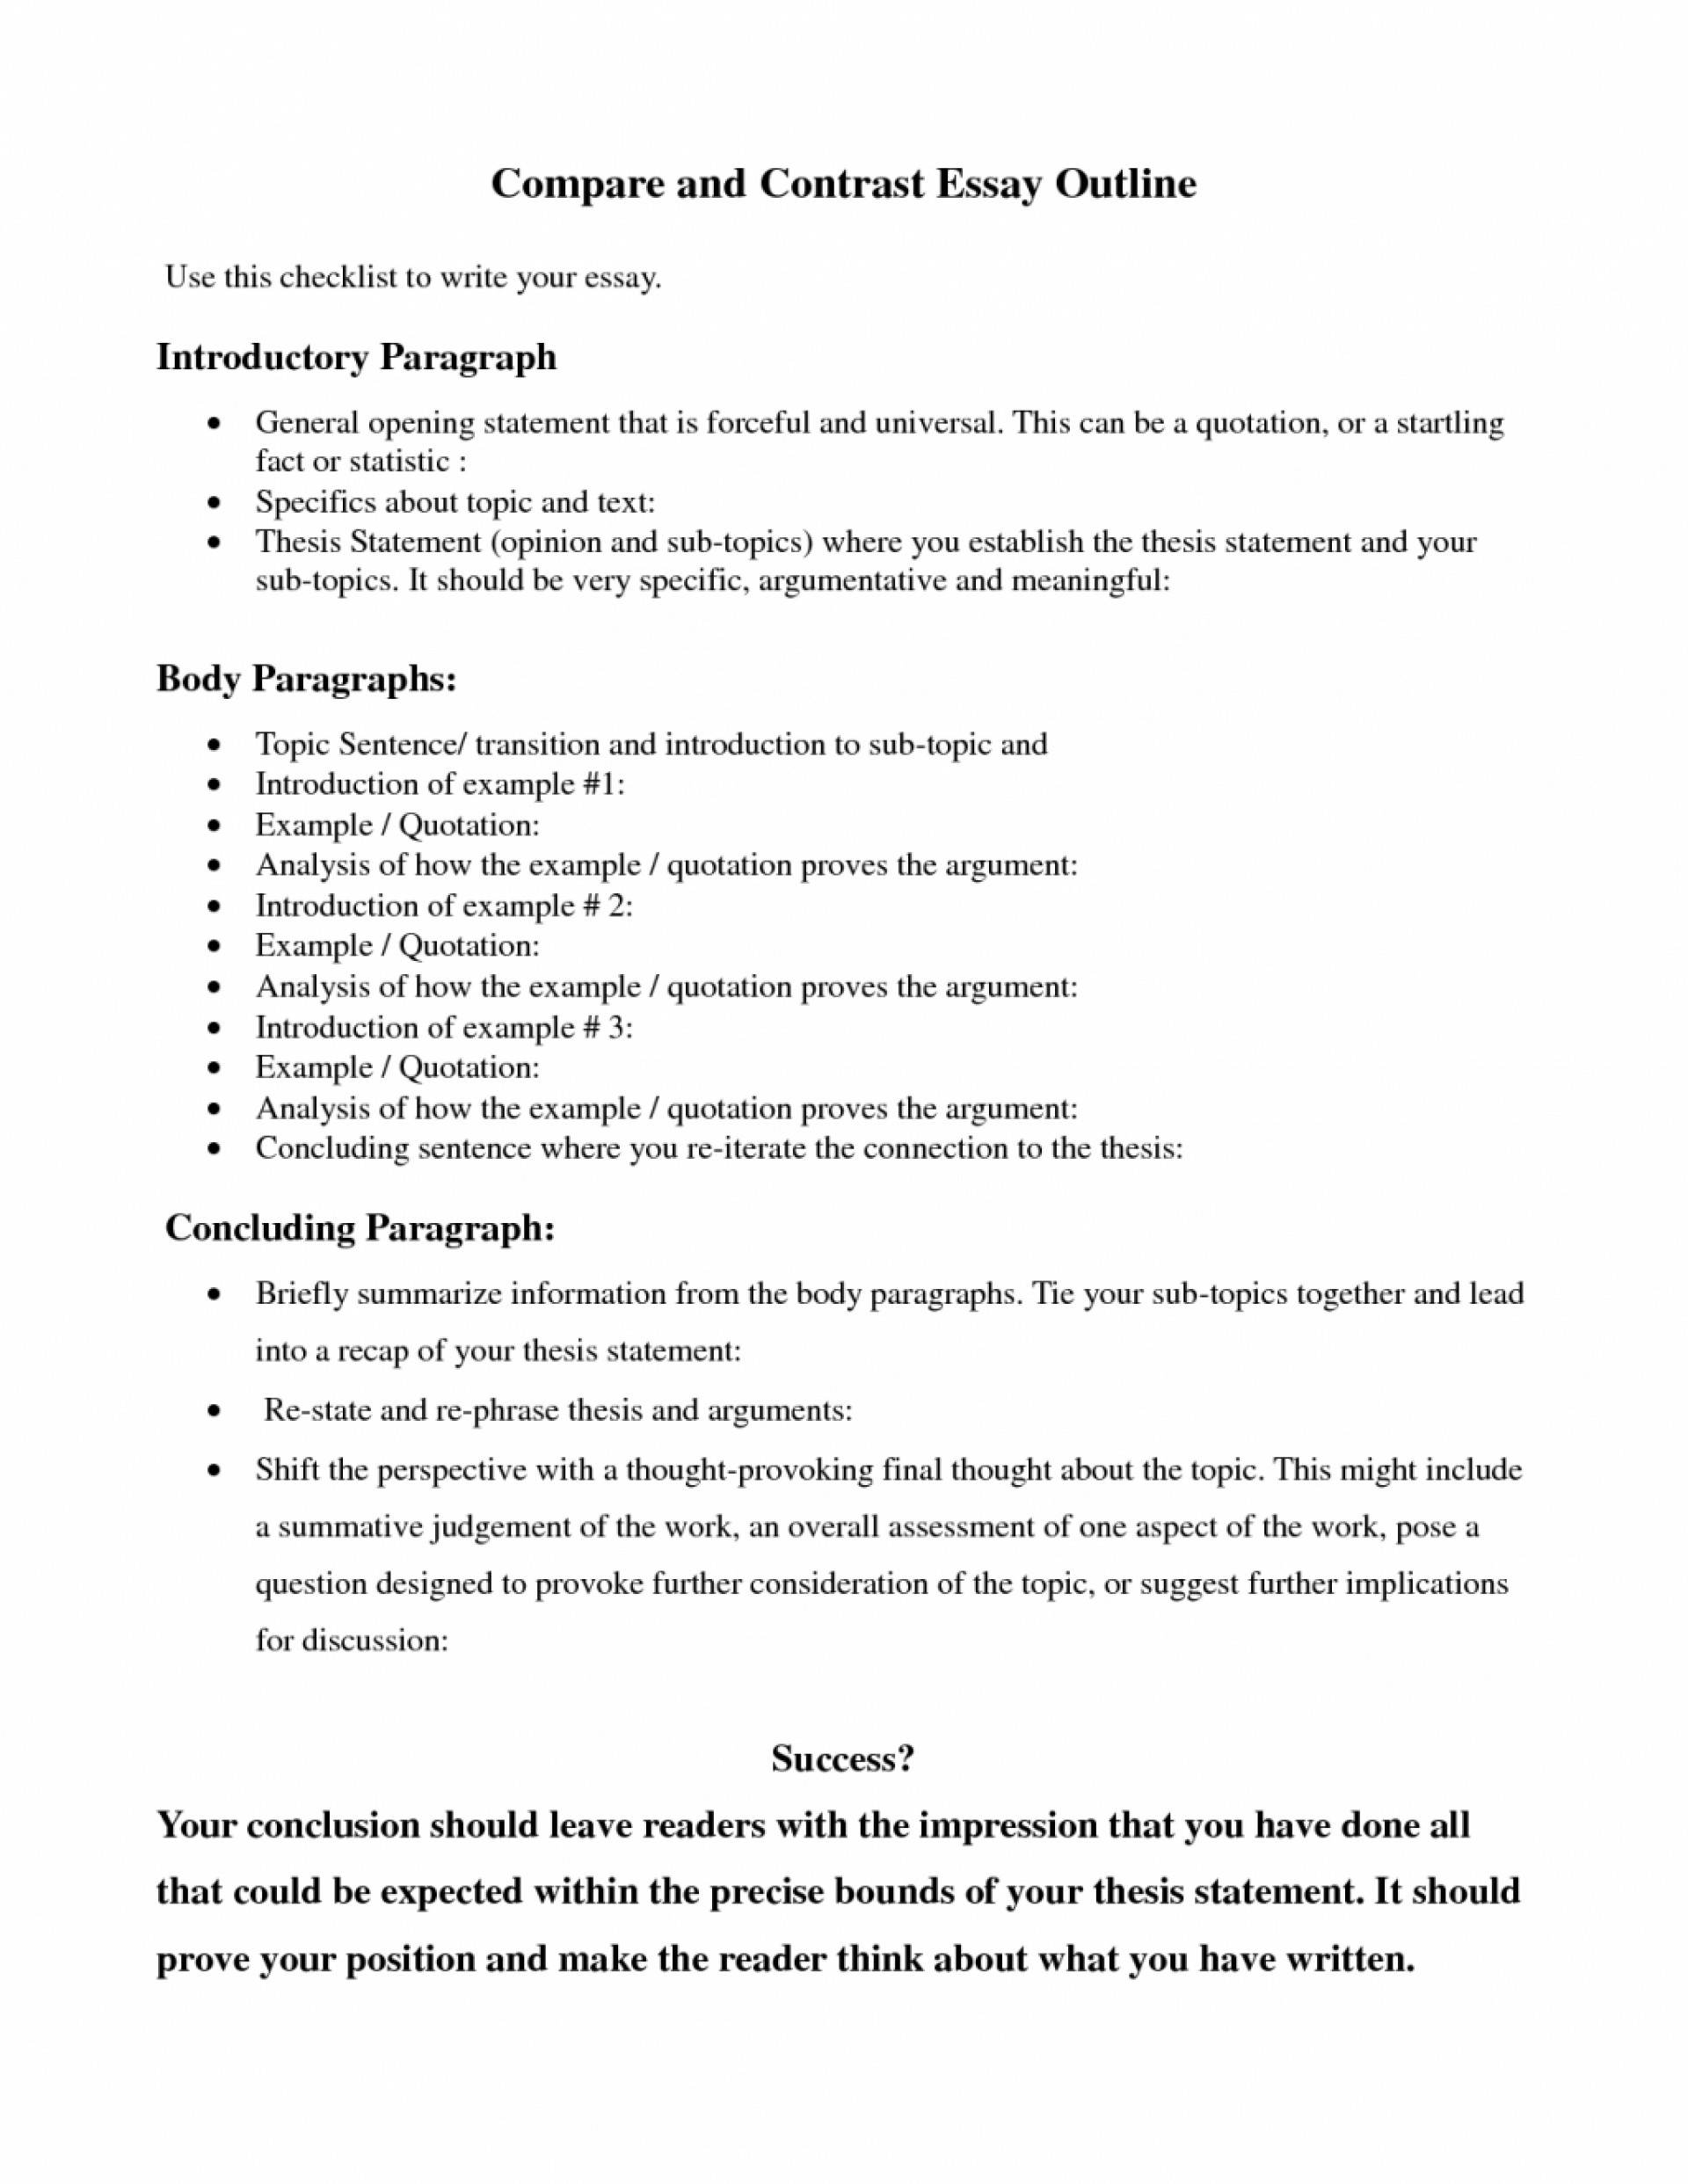 001 First Impression Essay Amazing Comparison Introductions Picture Inspirations Write Thesis Compare Contrast And 1024x1325 Awesome Opinion Making A Good Outline 1920